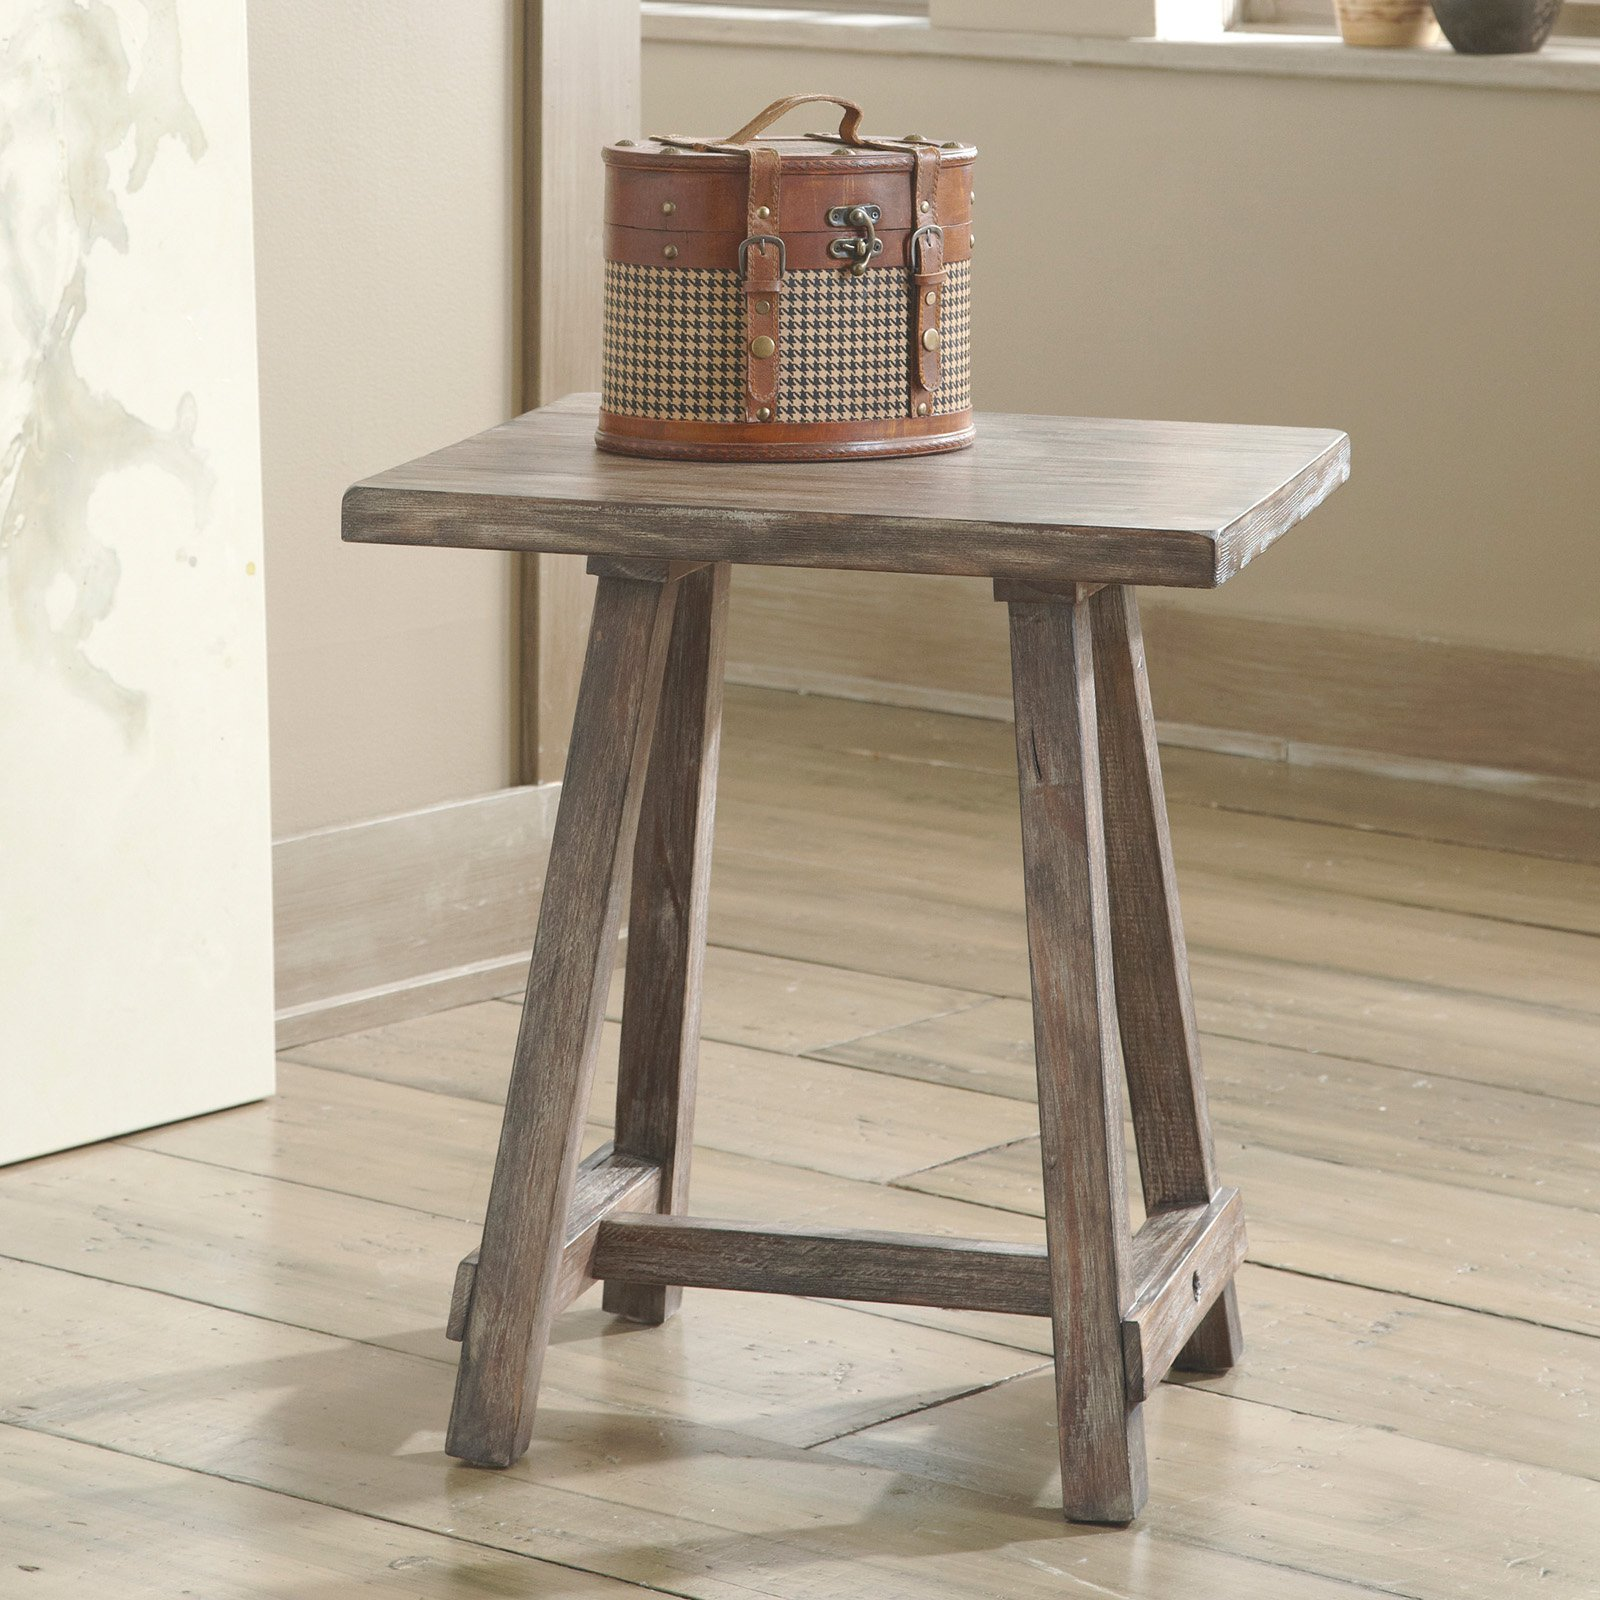 hire fallout island trestle farm accent metal farmhouse long table wood rentals isl chair rental white tables los round for poker modern dining and pub reclaimed pine distressed